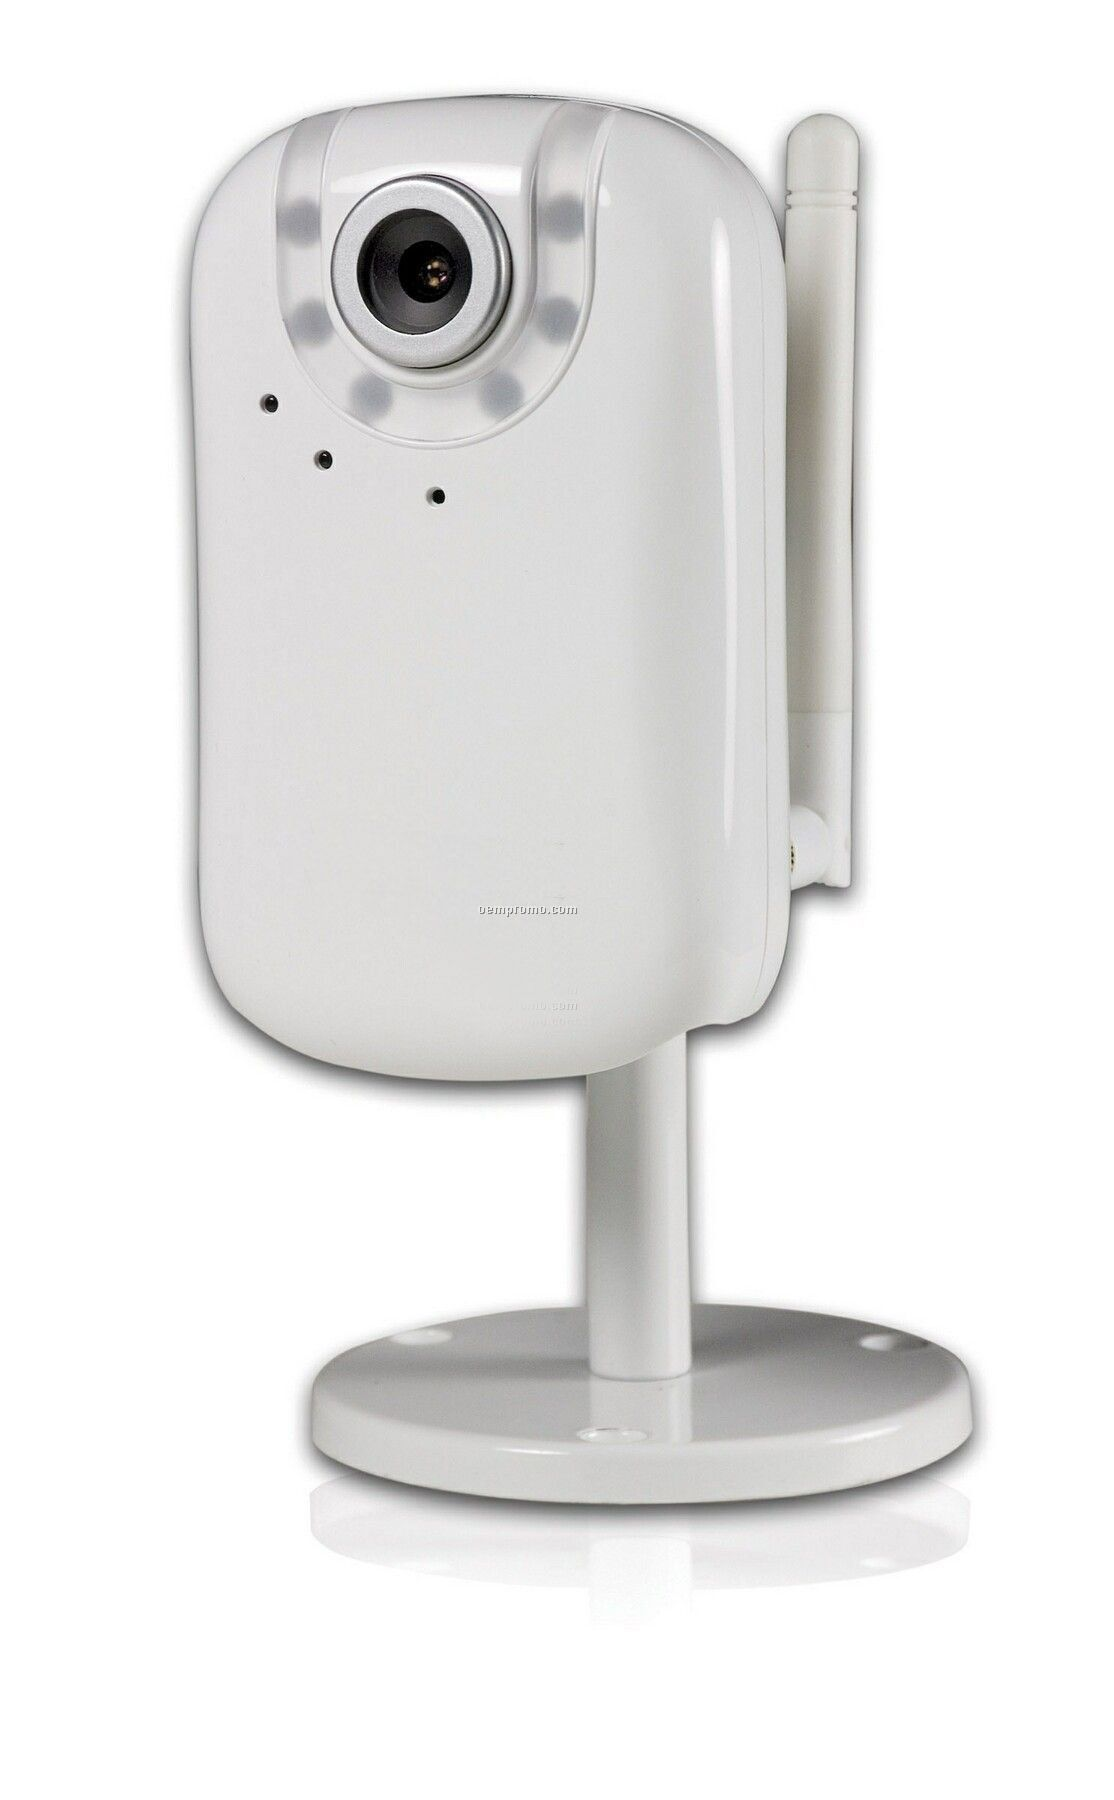 Easy Connect Wireless Network Ip Camera W/ 10x Digital Zoom